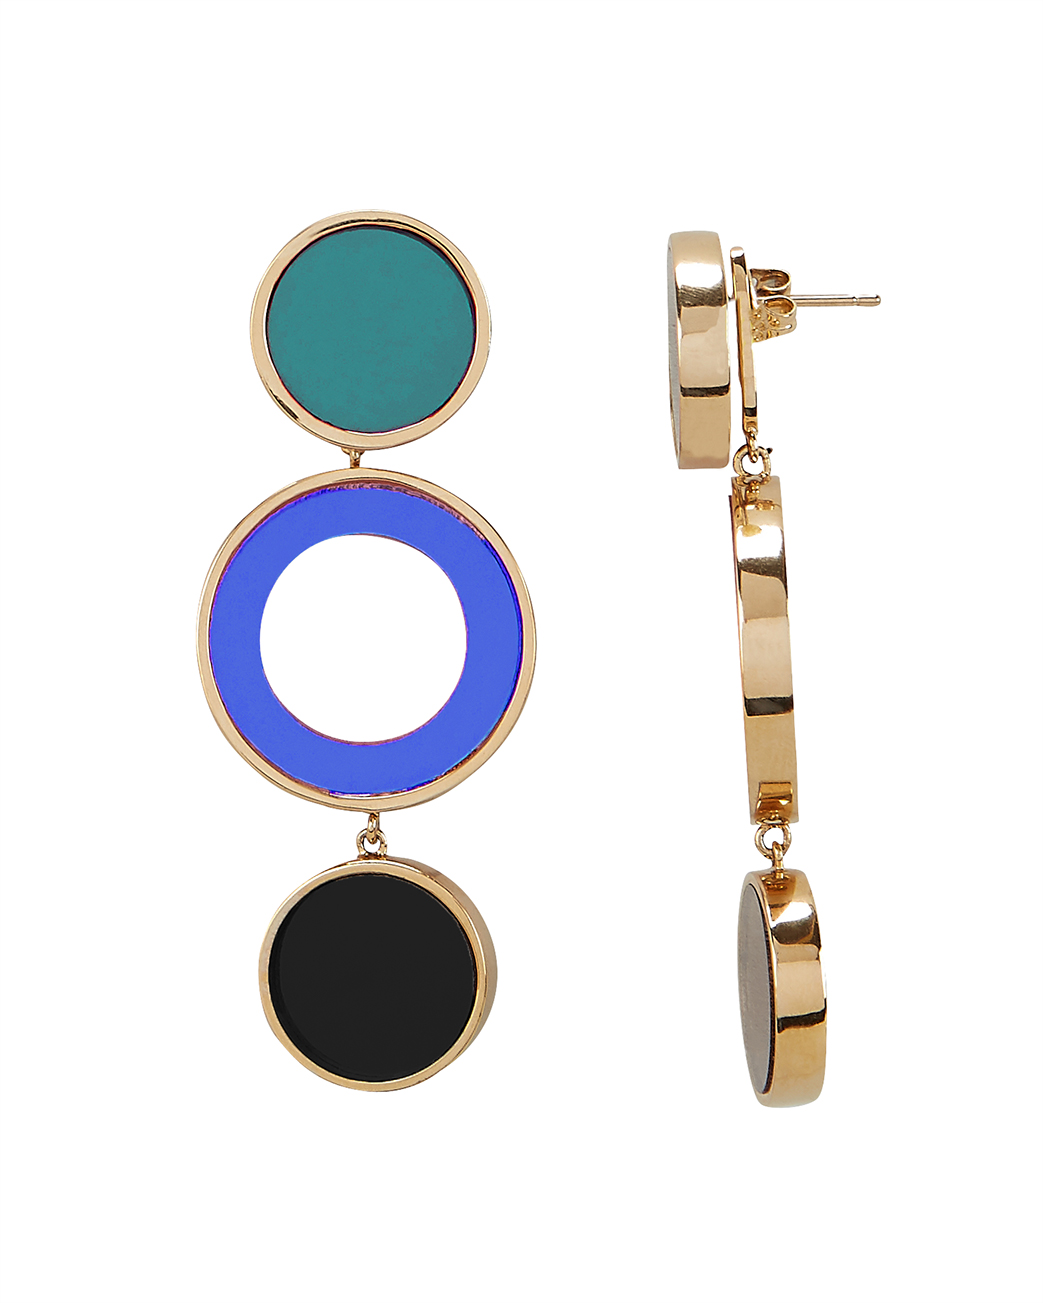 COLETTE MALOUF Reflection Blue Earrings